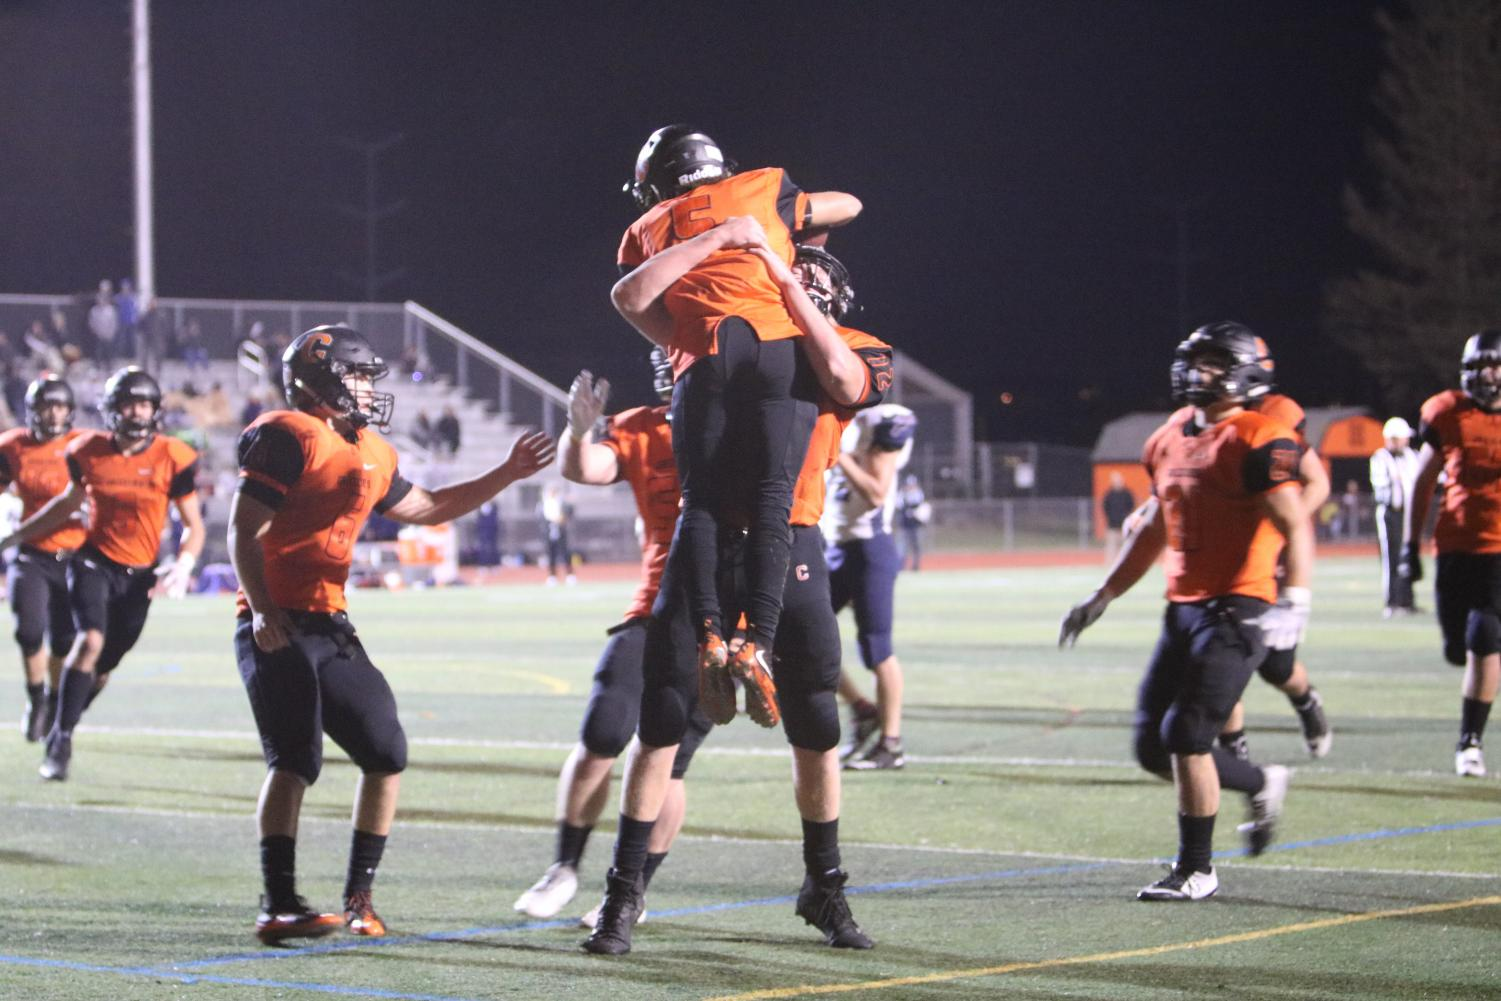 Senior Jahmal Cornwell celebrates one of his three touchdowns in Cal's 35-34 NCS semifinal loss to Freedom on Nov. 30.